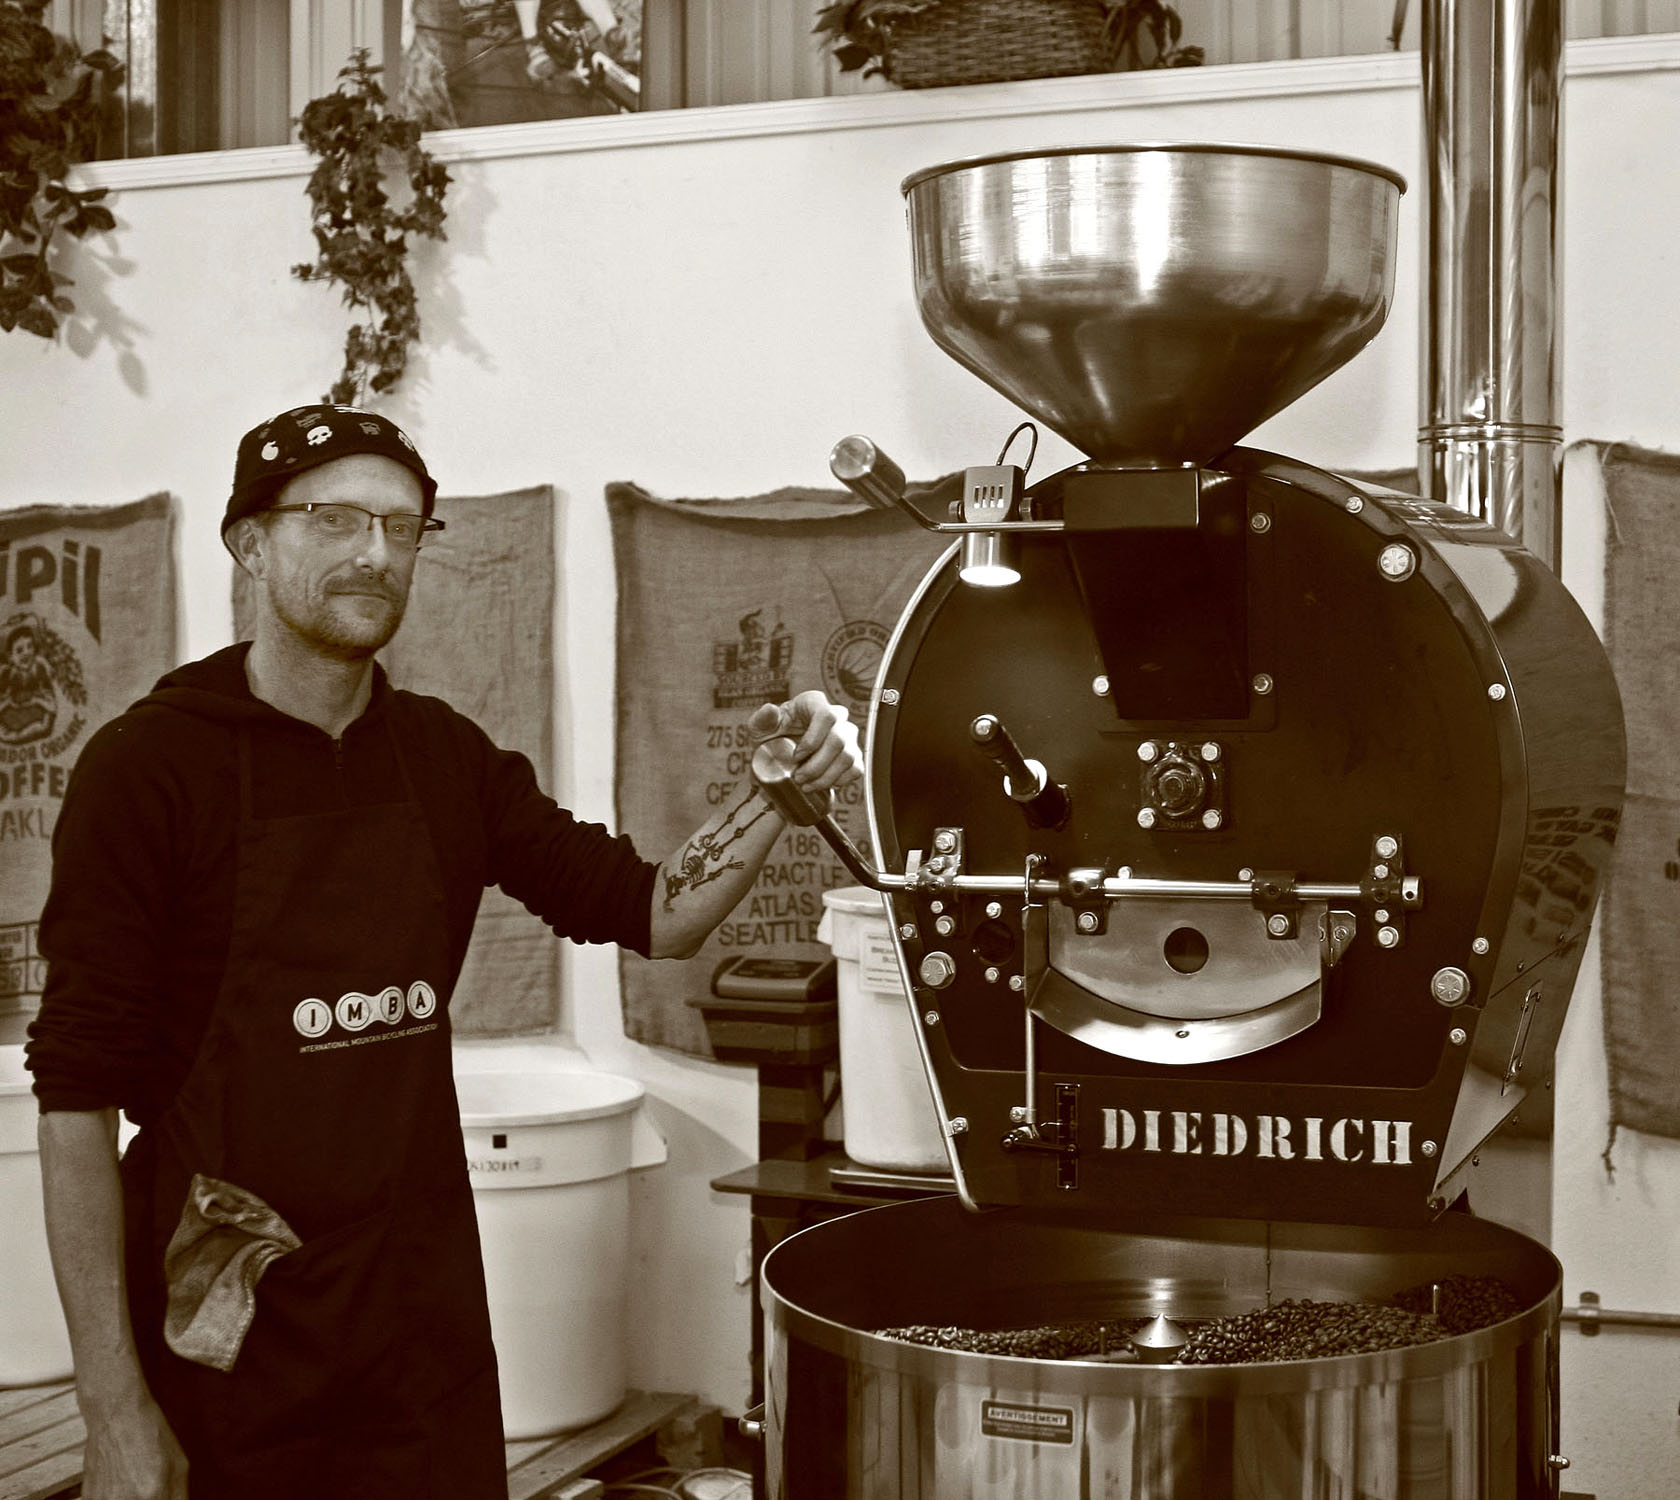 Kinetic Koffee roaster Kelly Brannon at the helm of Diedre, the Diedrich roaster. Photo by Matt Filar.